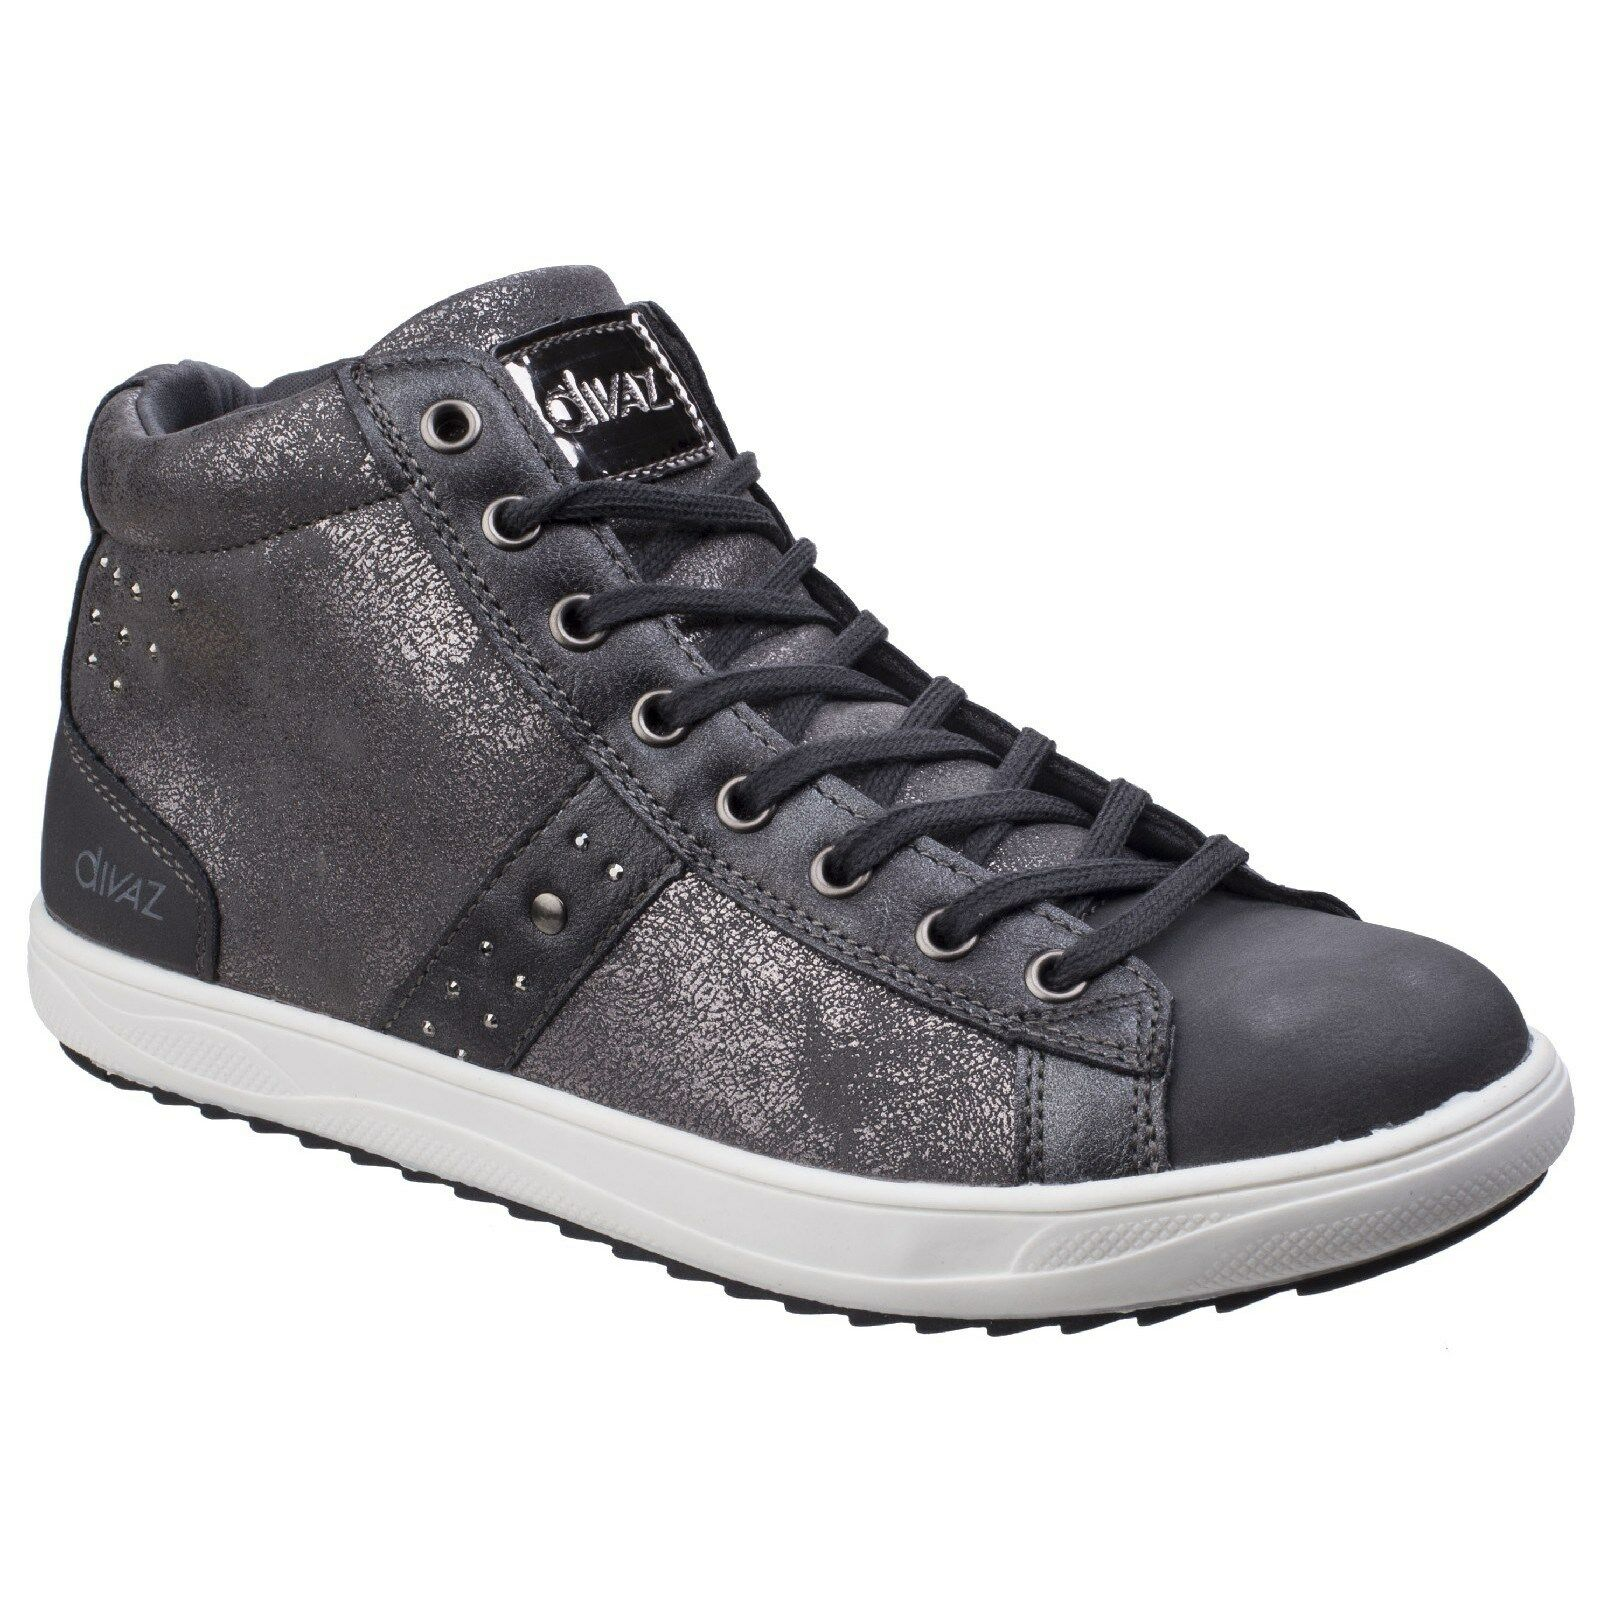 Divaz STEFFY Sneakers Stiefeletten metallisch Sneakers STEFFY Damen Modische Turnschuhe 236257